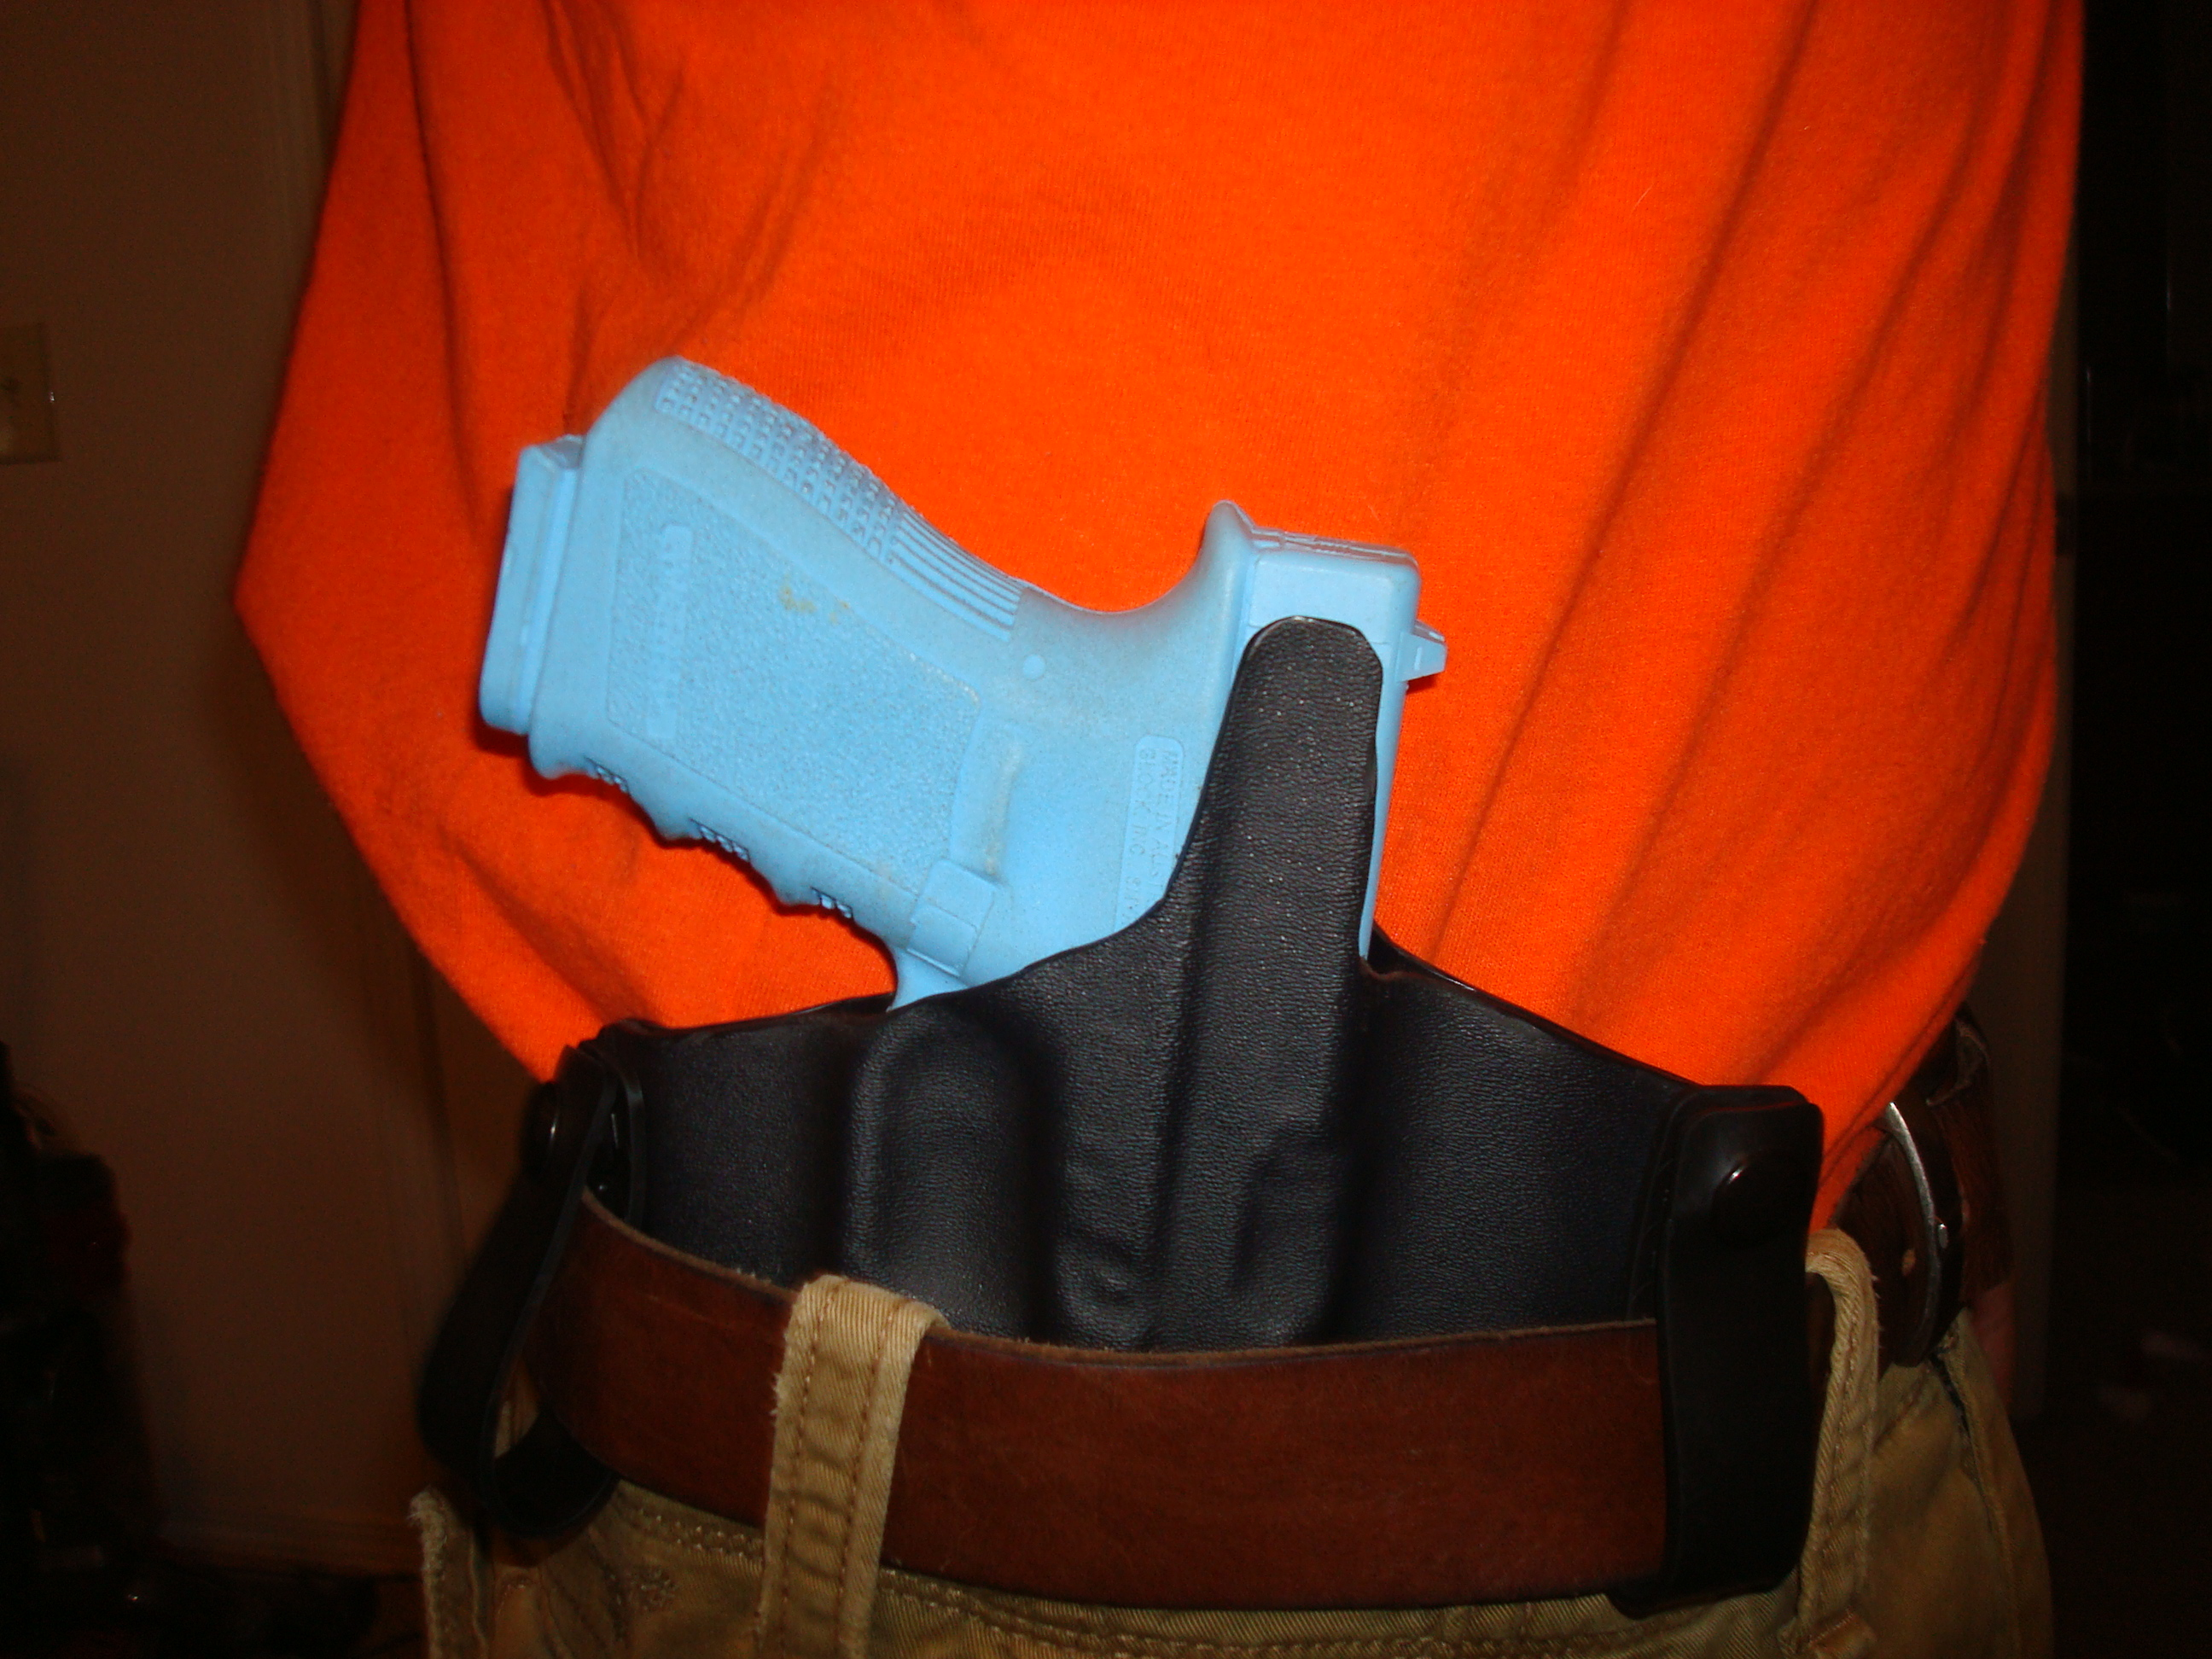 Custom kydex holsters!!-dsc02683.jpg